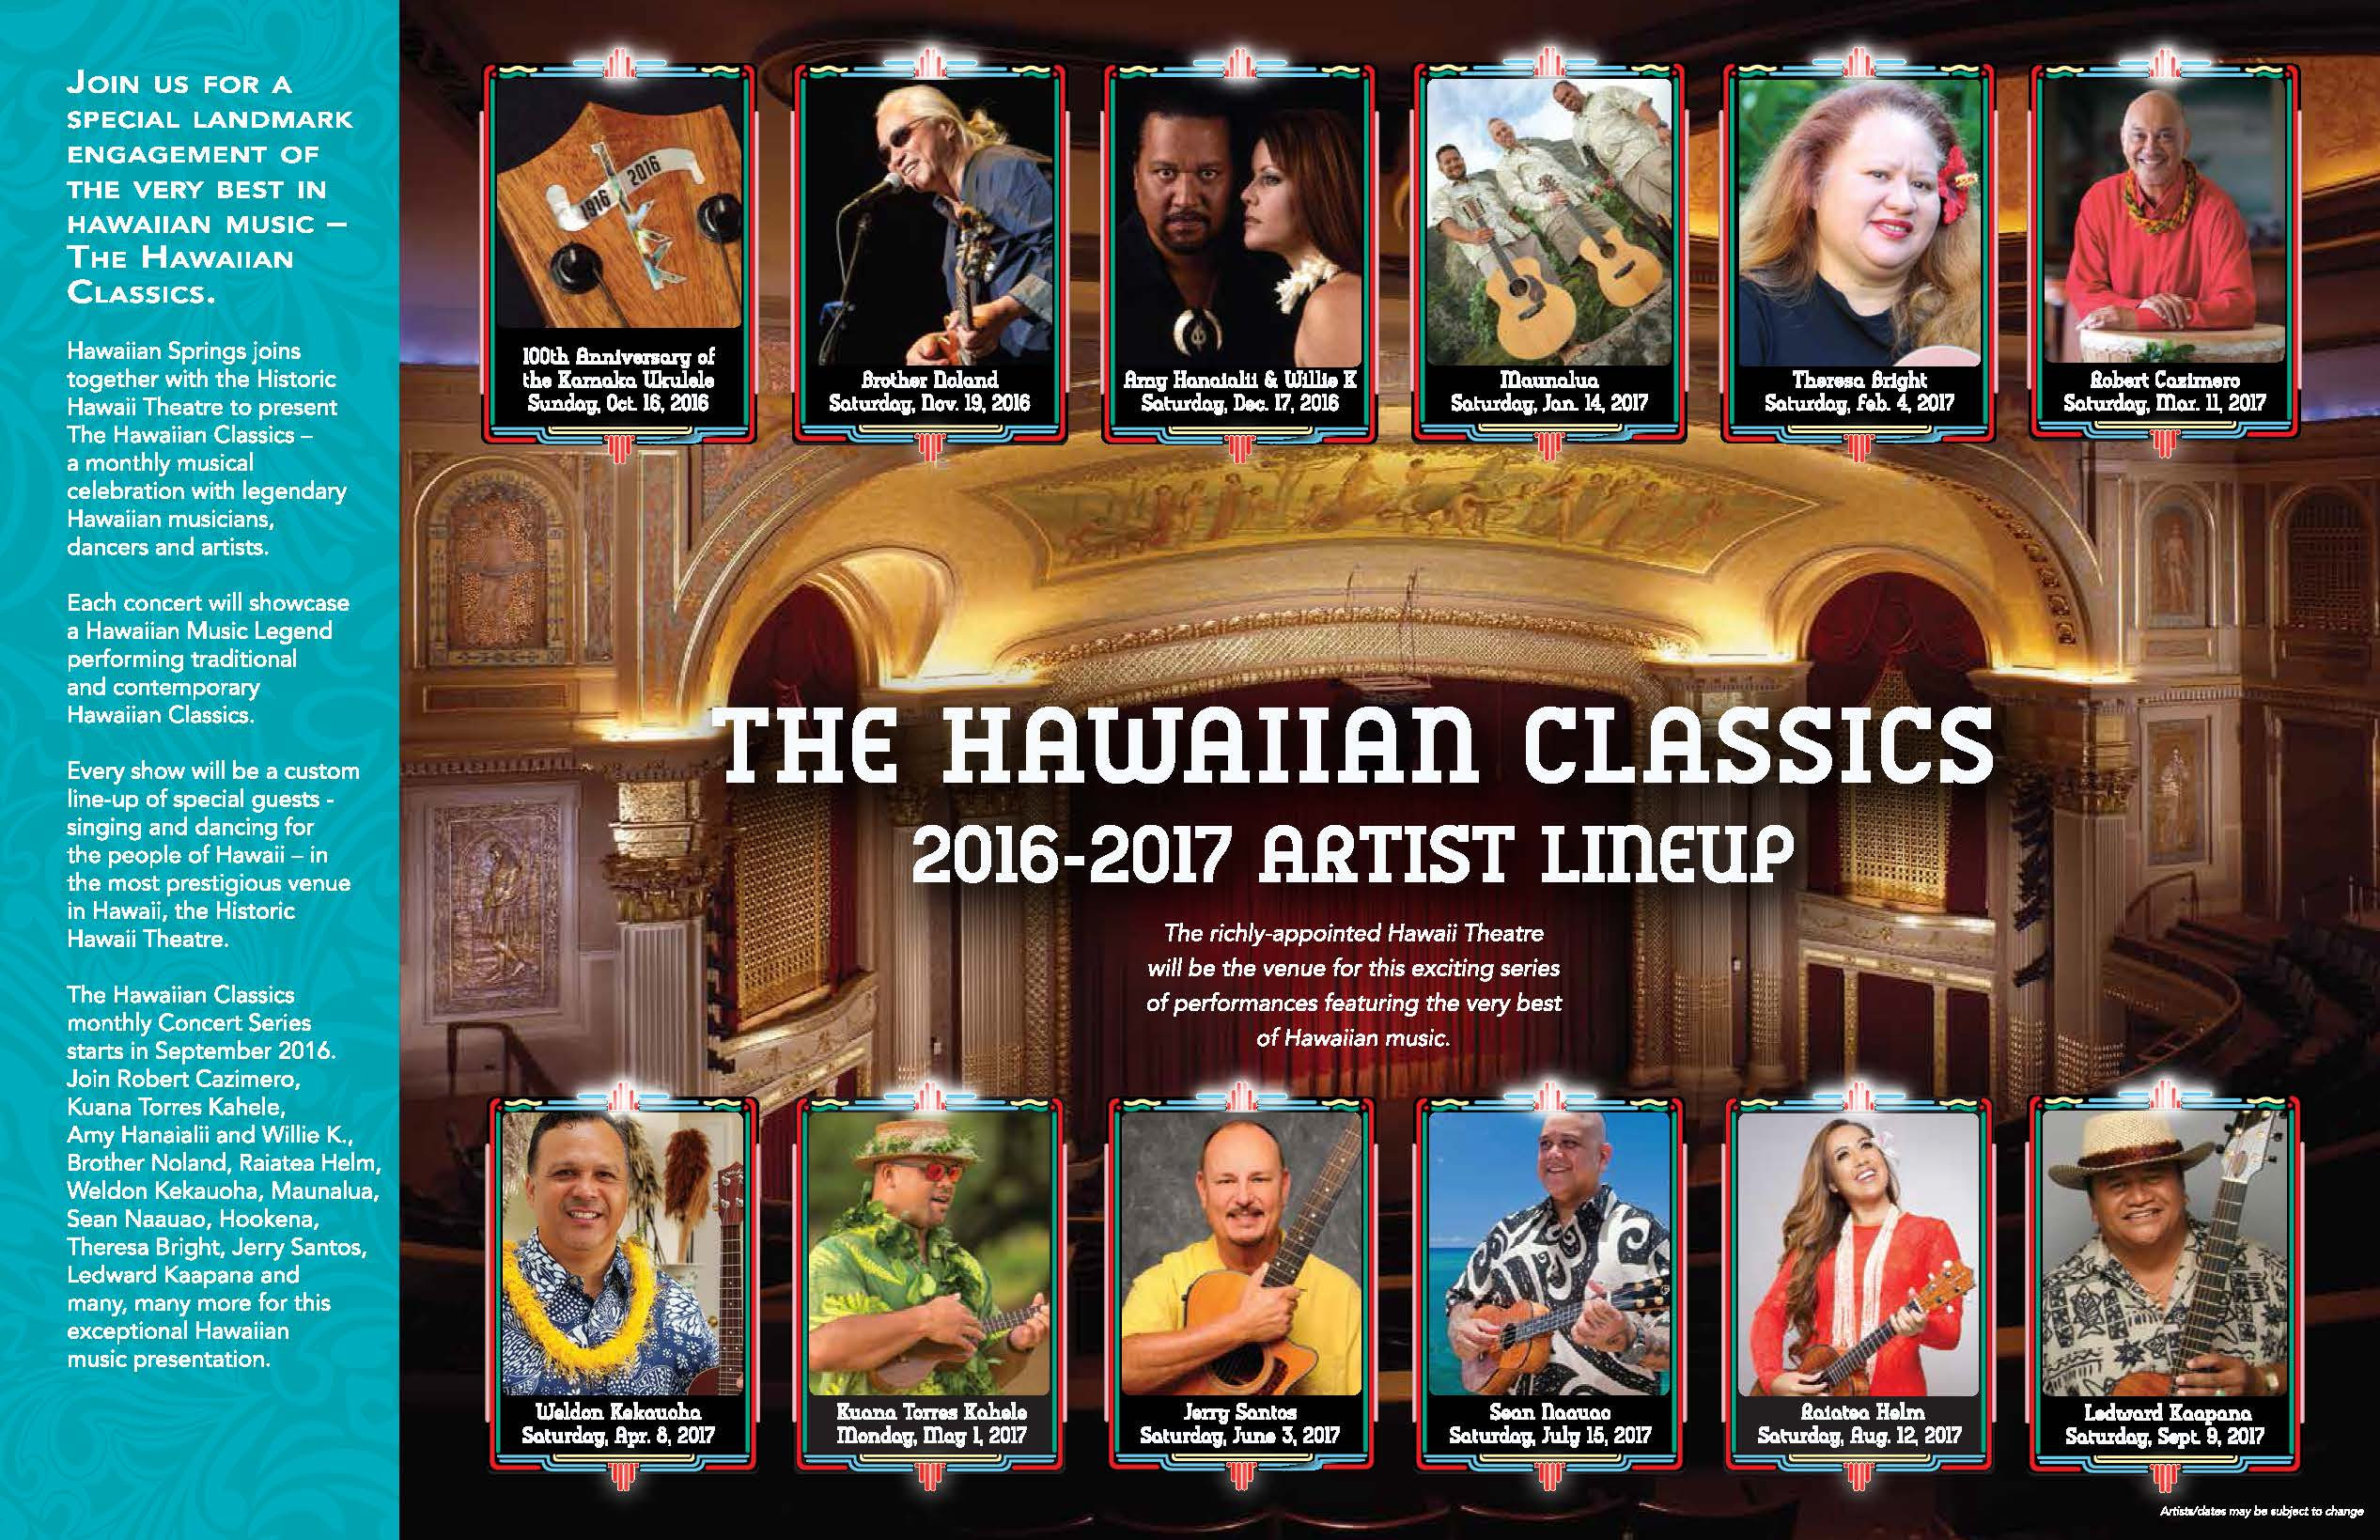 The Hawaiian Classics at the Hawaii Theatre Presented by Hawaiian Springs